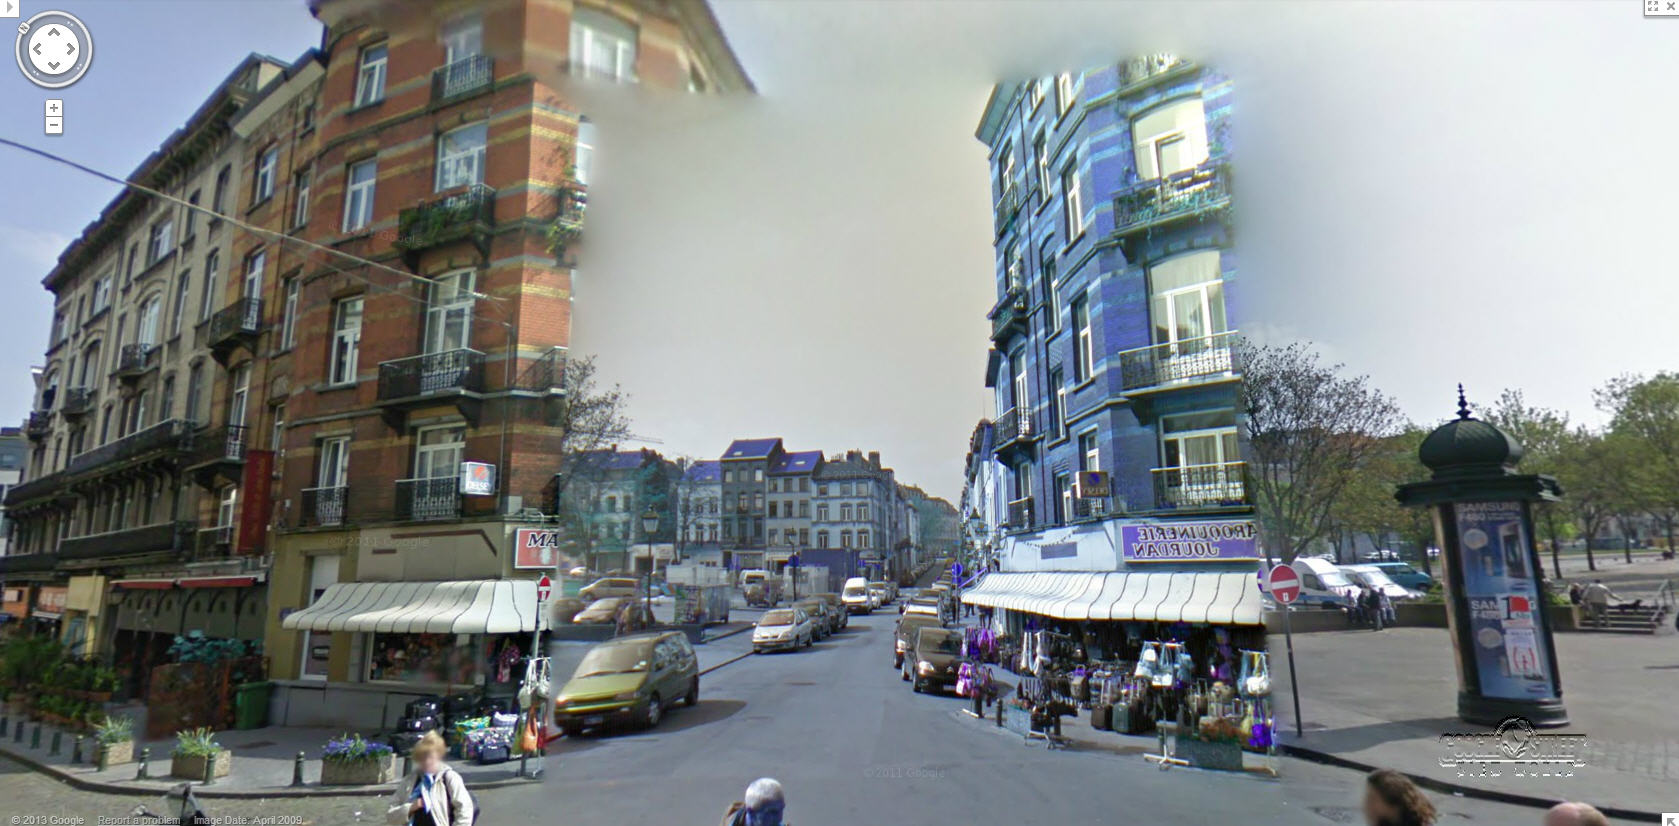 Google Street View Discovers a Portal to Another Place!